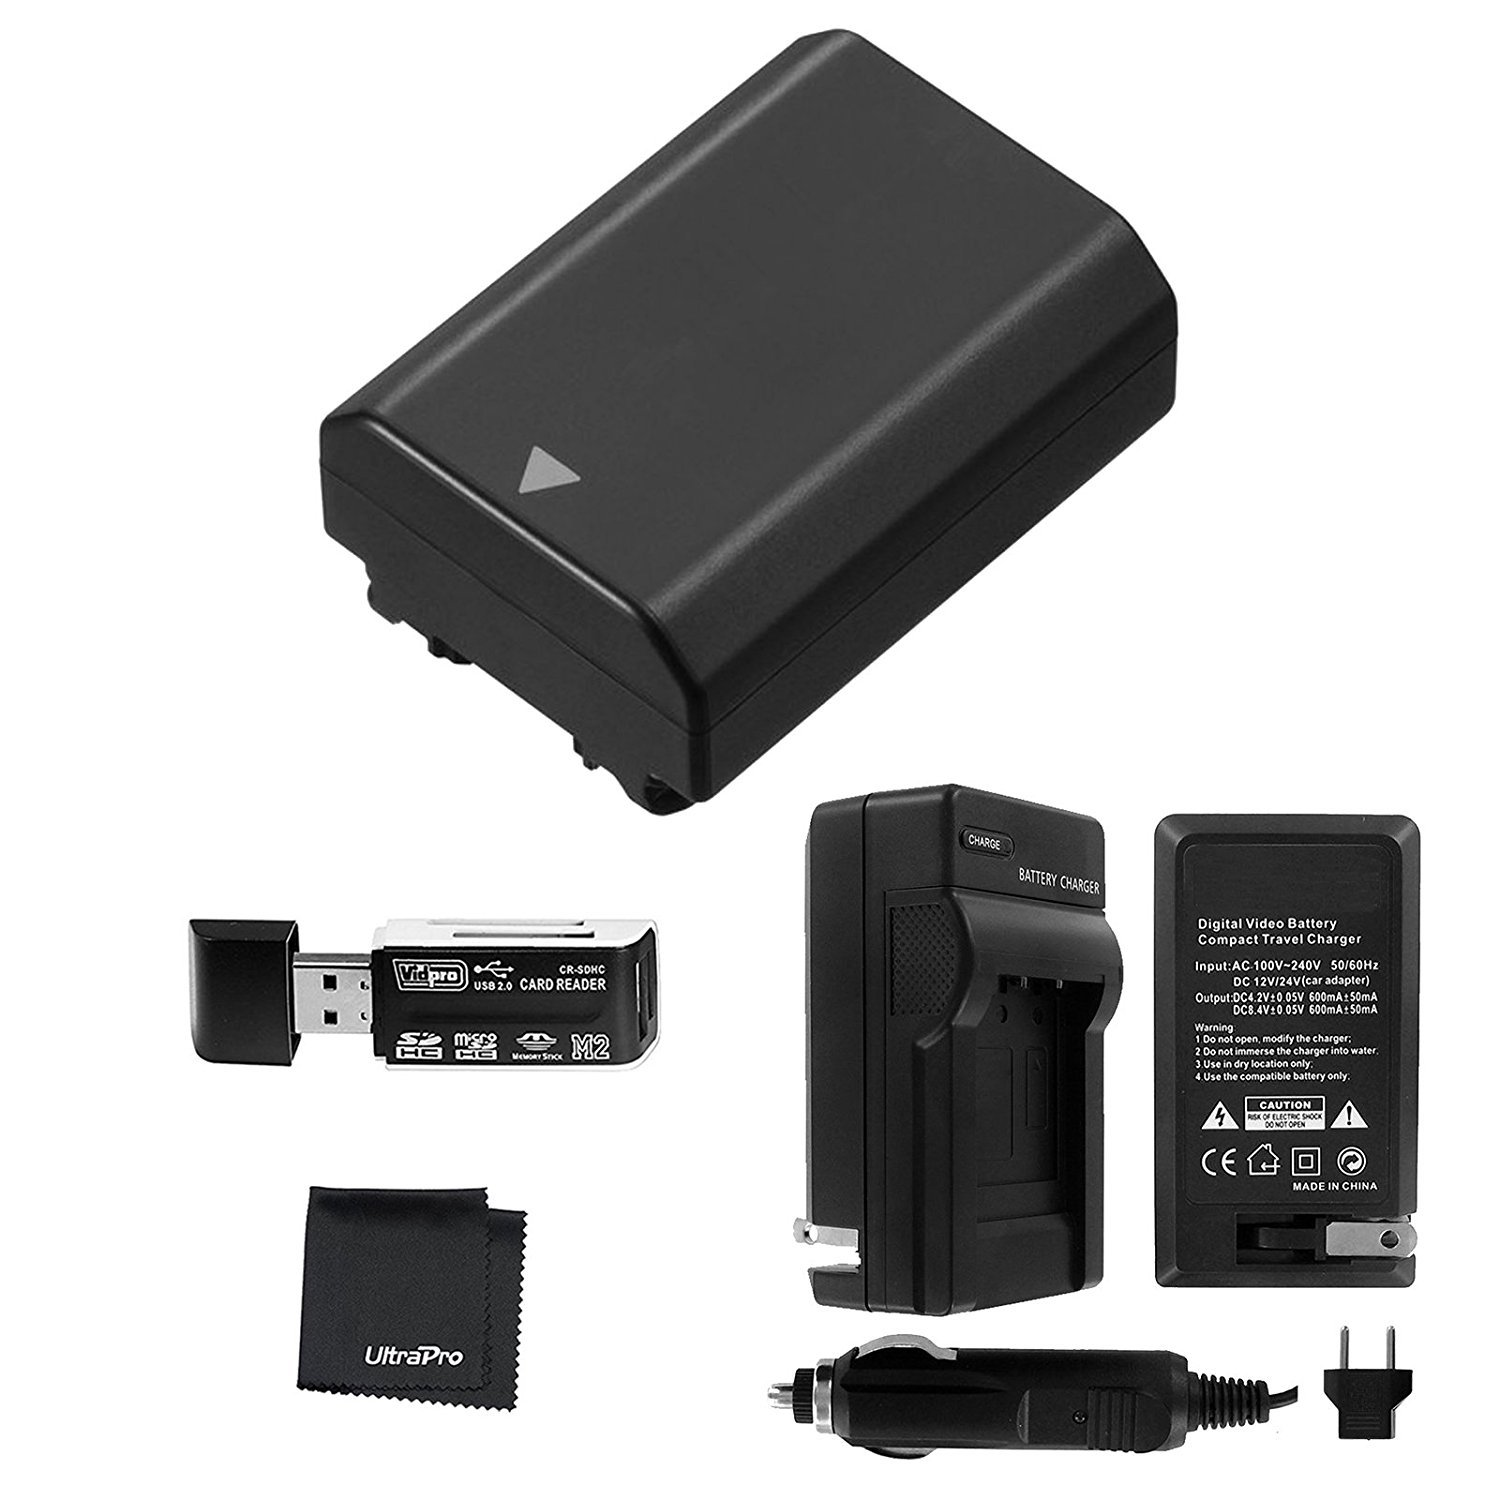 UltraPro NP-FZ100 High-Capacity Replacement Battery with Rapid Travel Charger for Select Sony Digital Cameras. UltraPro Bundle Includes: USB SD/SDHC Card Reader, Deluxe Microfiber Cleaning Cloth